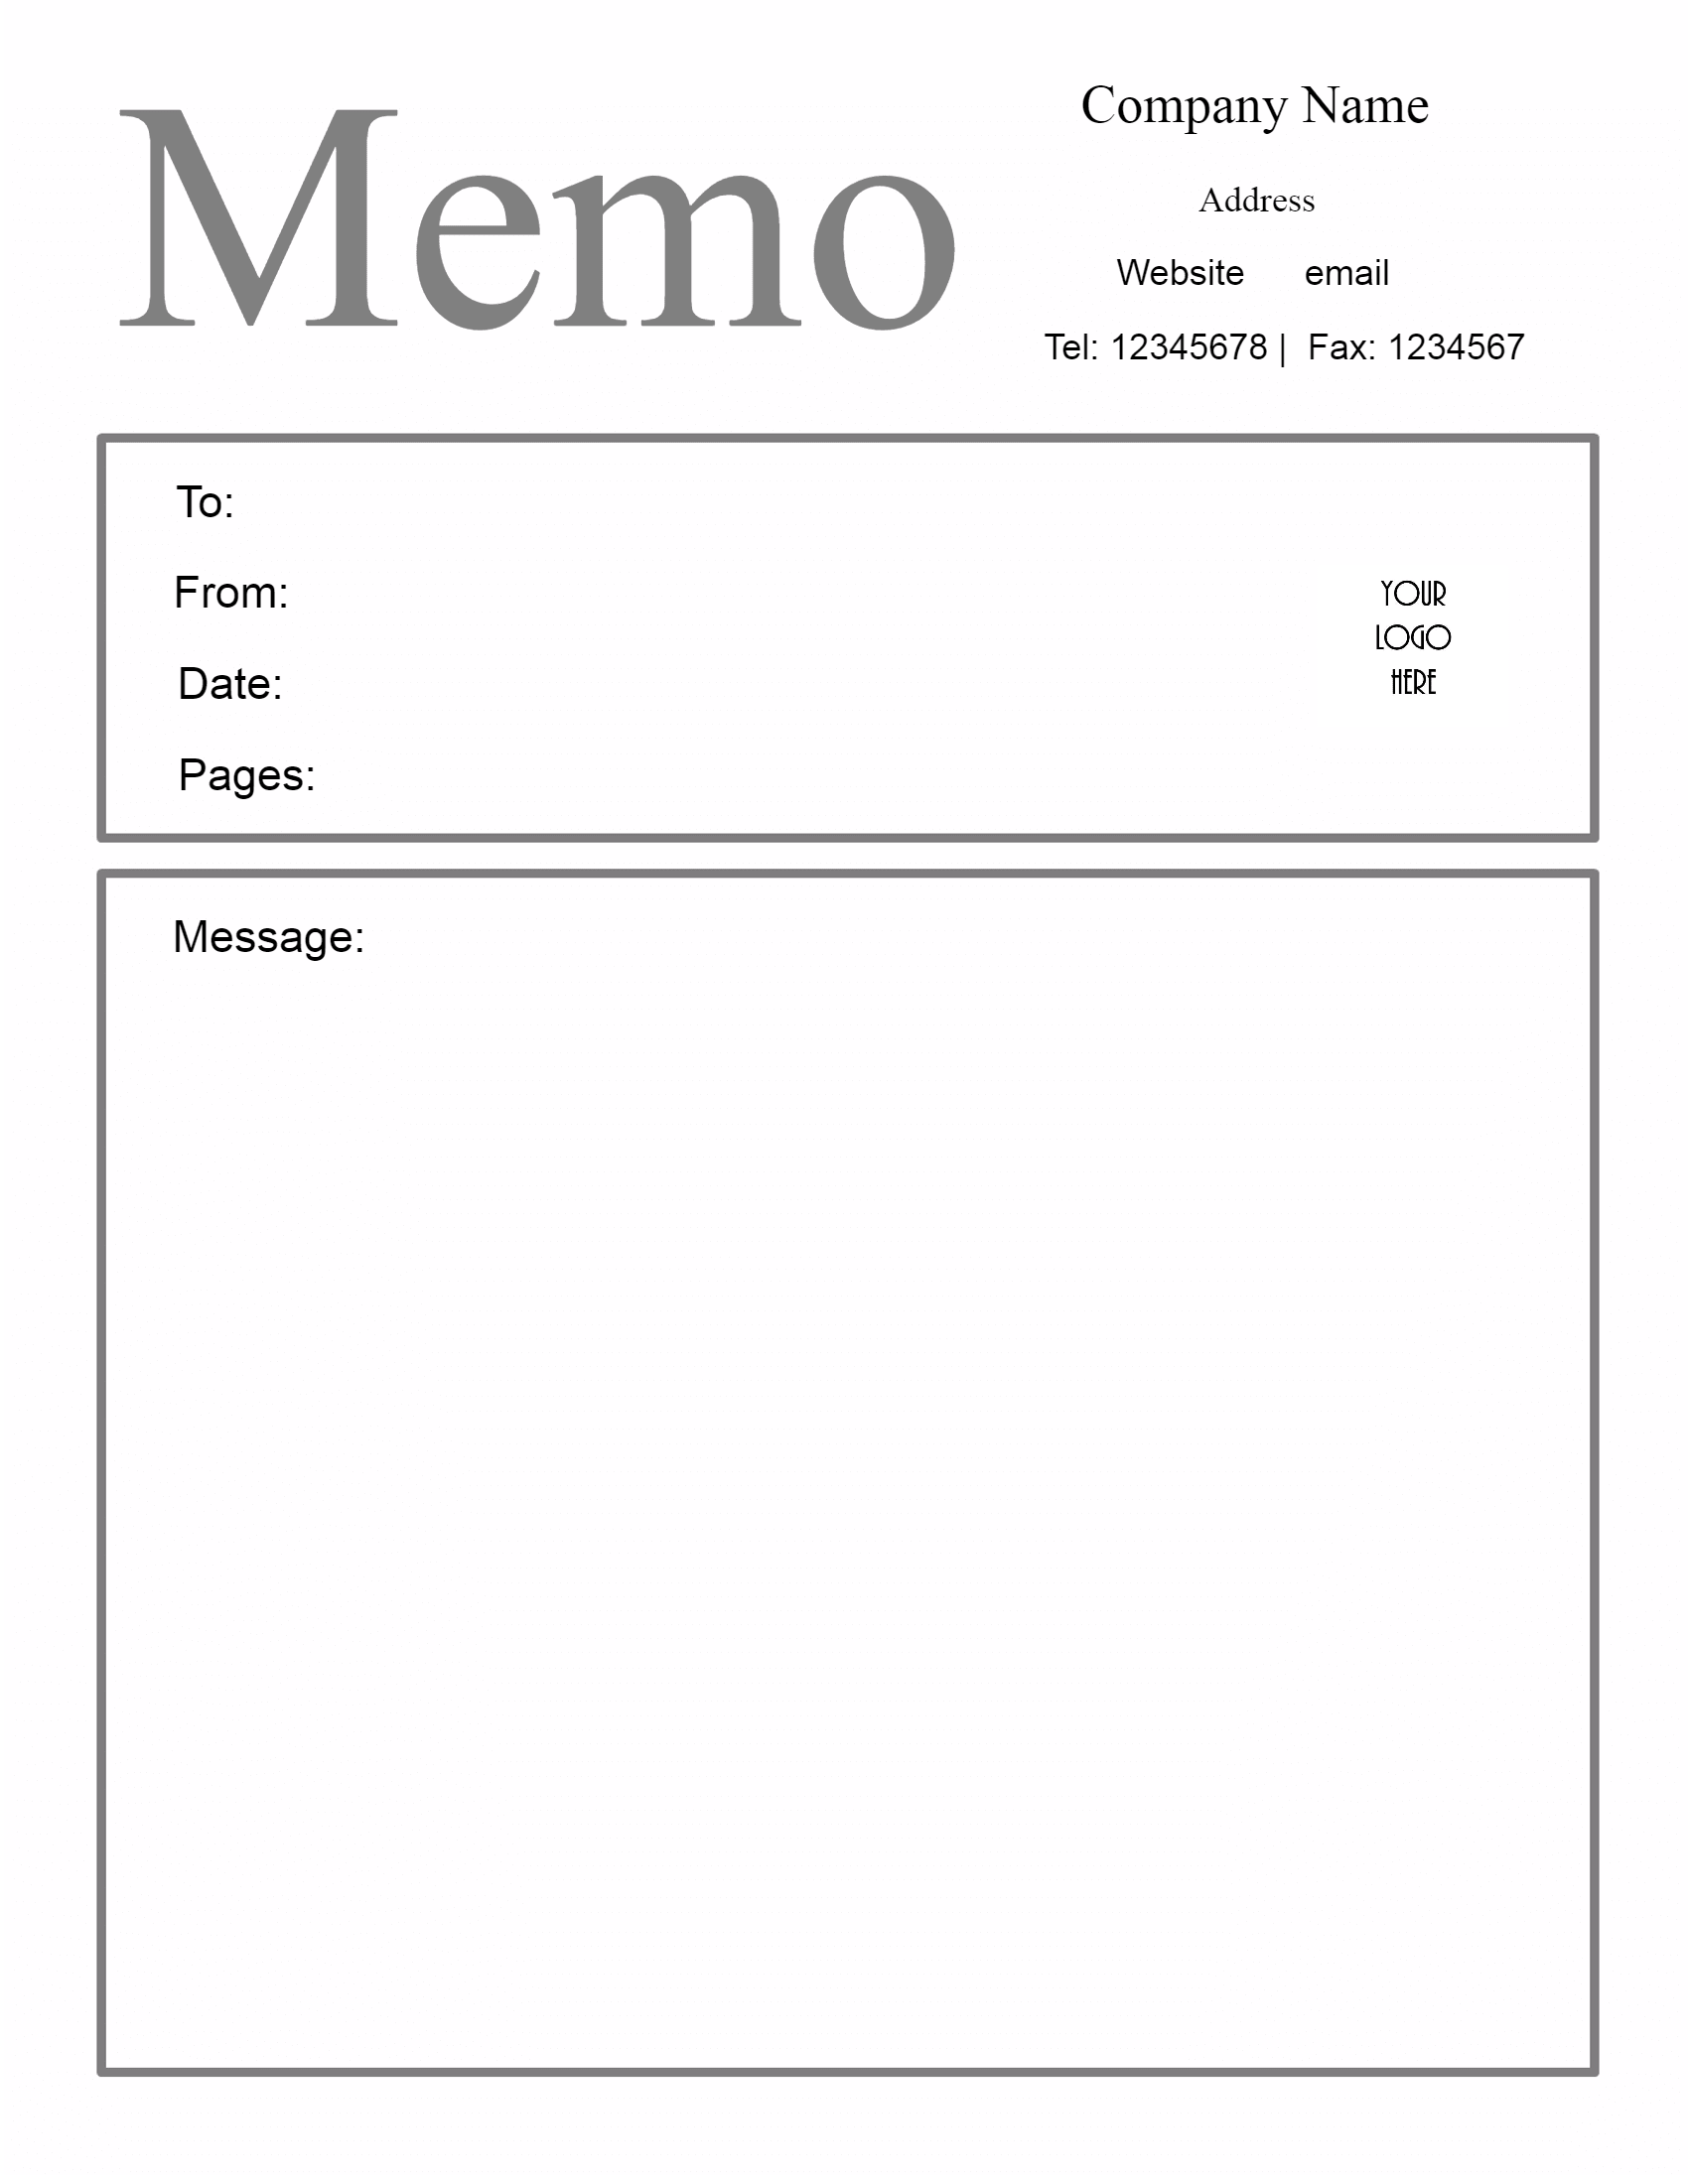 Free microsoft word memo template for Memo templat